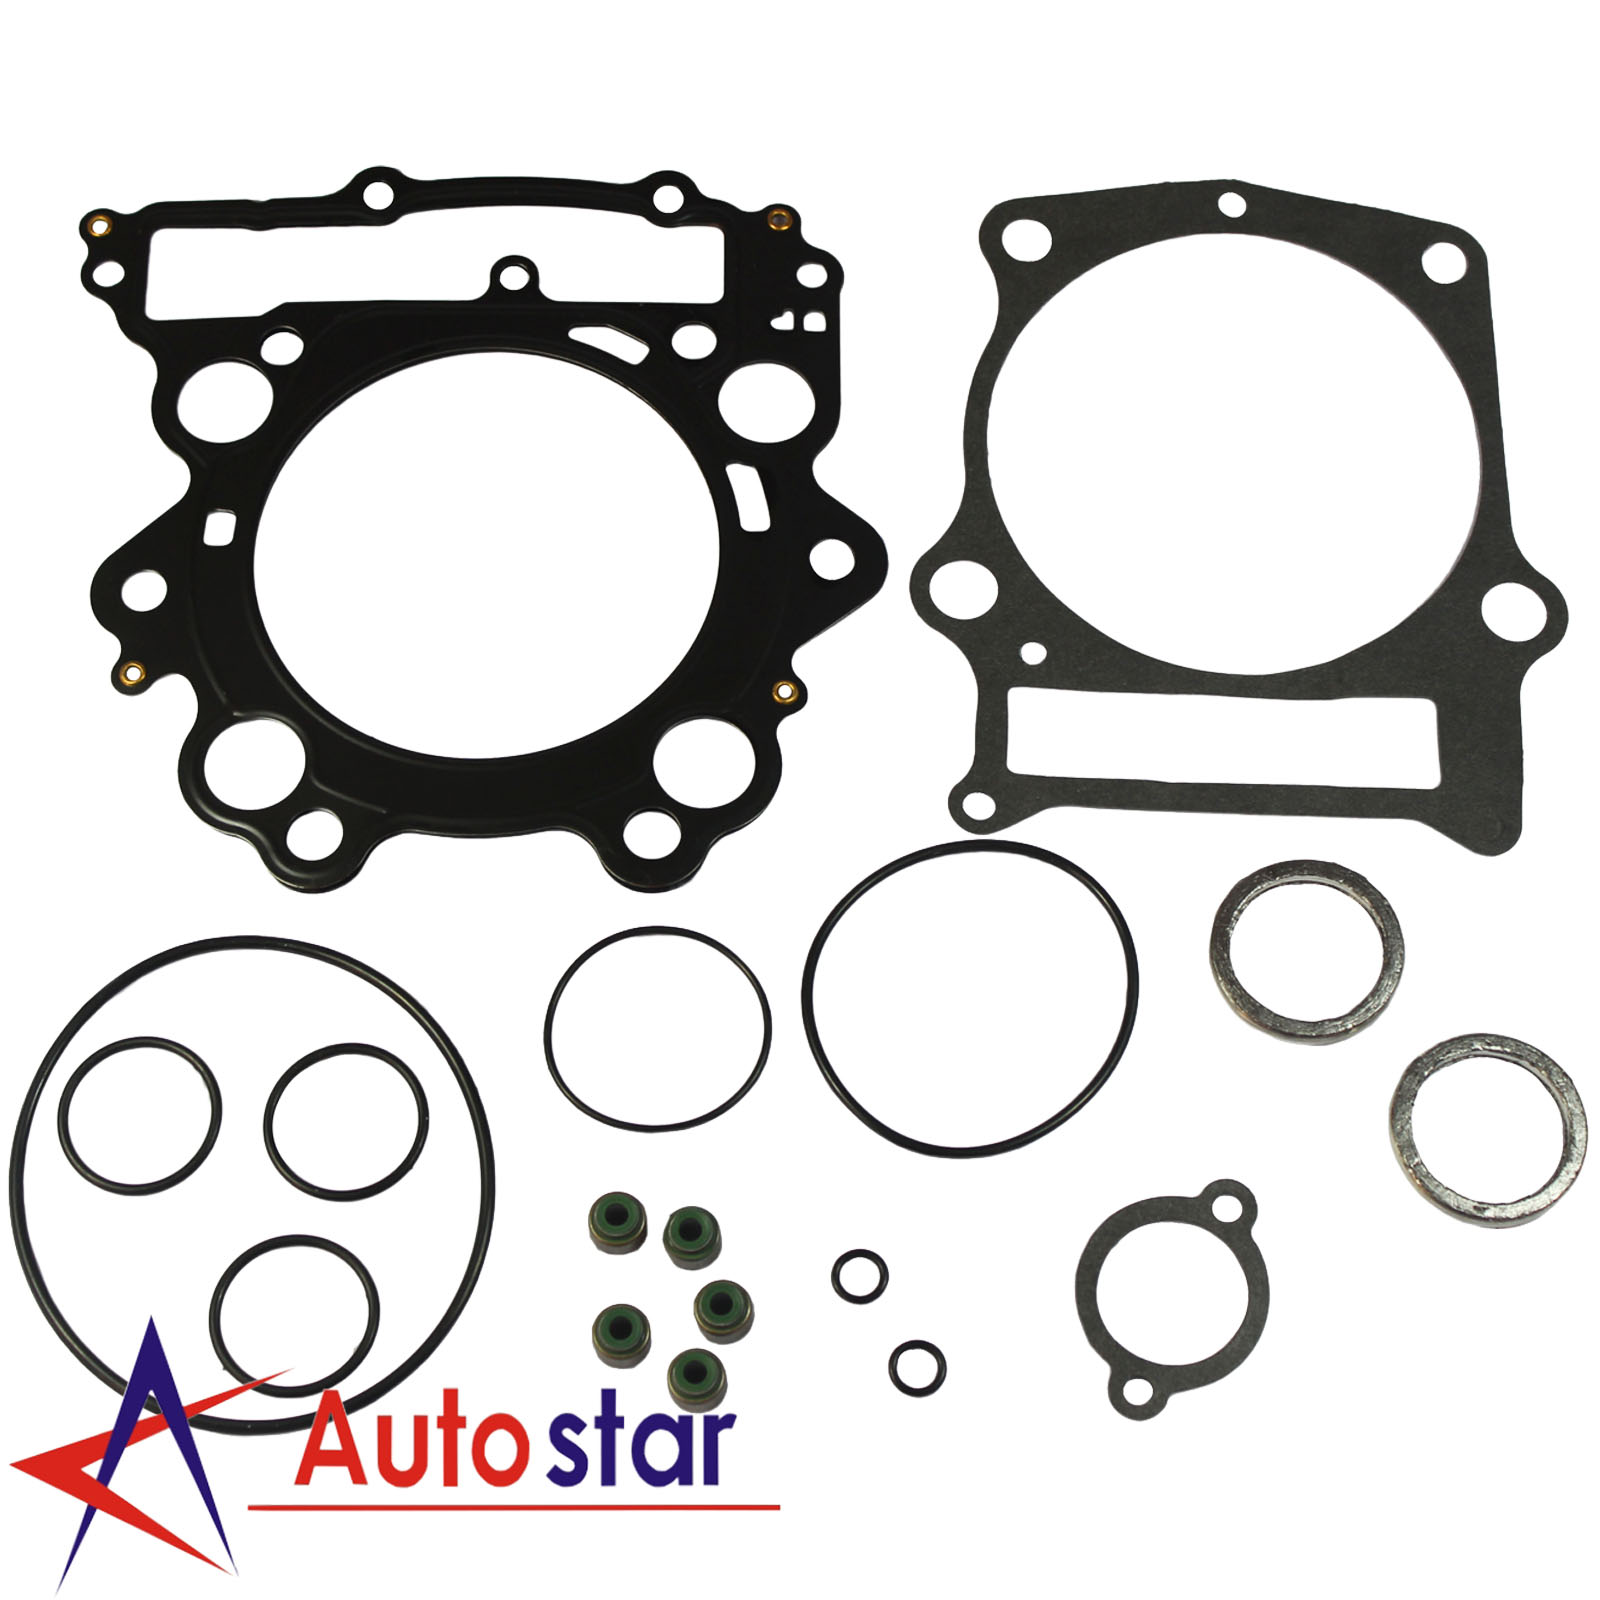 Top End Head Gasket Rebuild Kit For 04-07 Yamaha Rhino 660